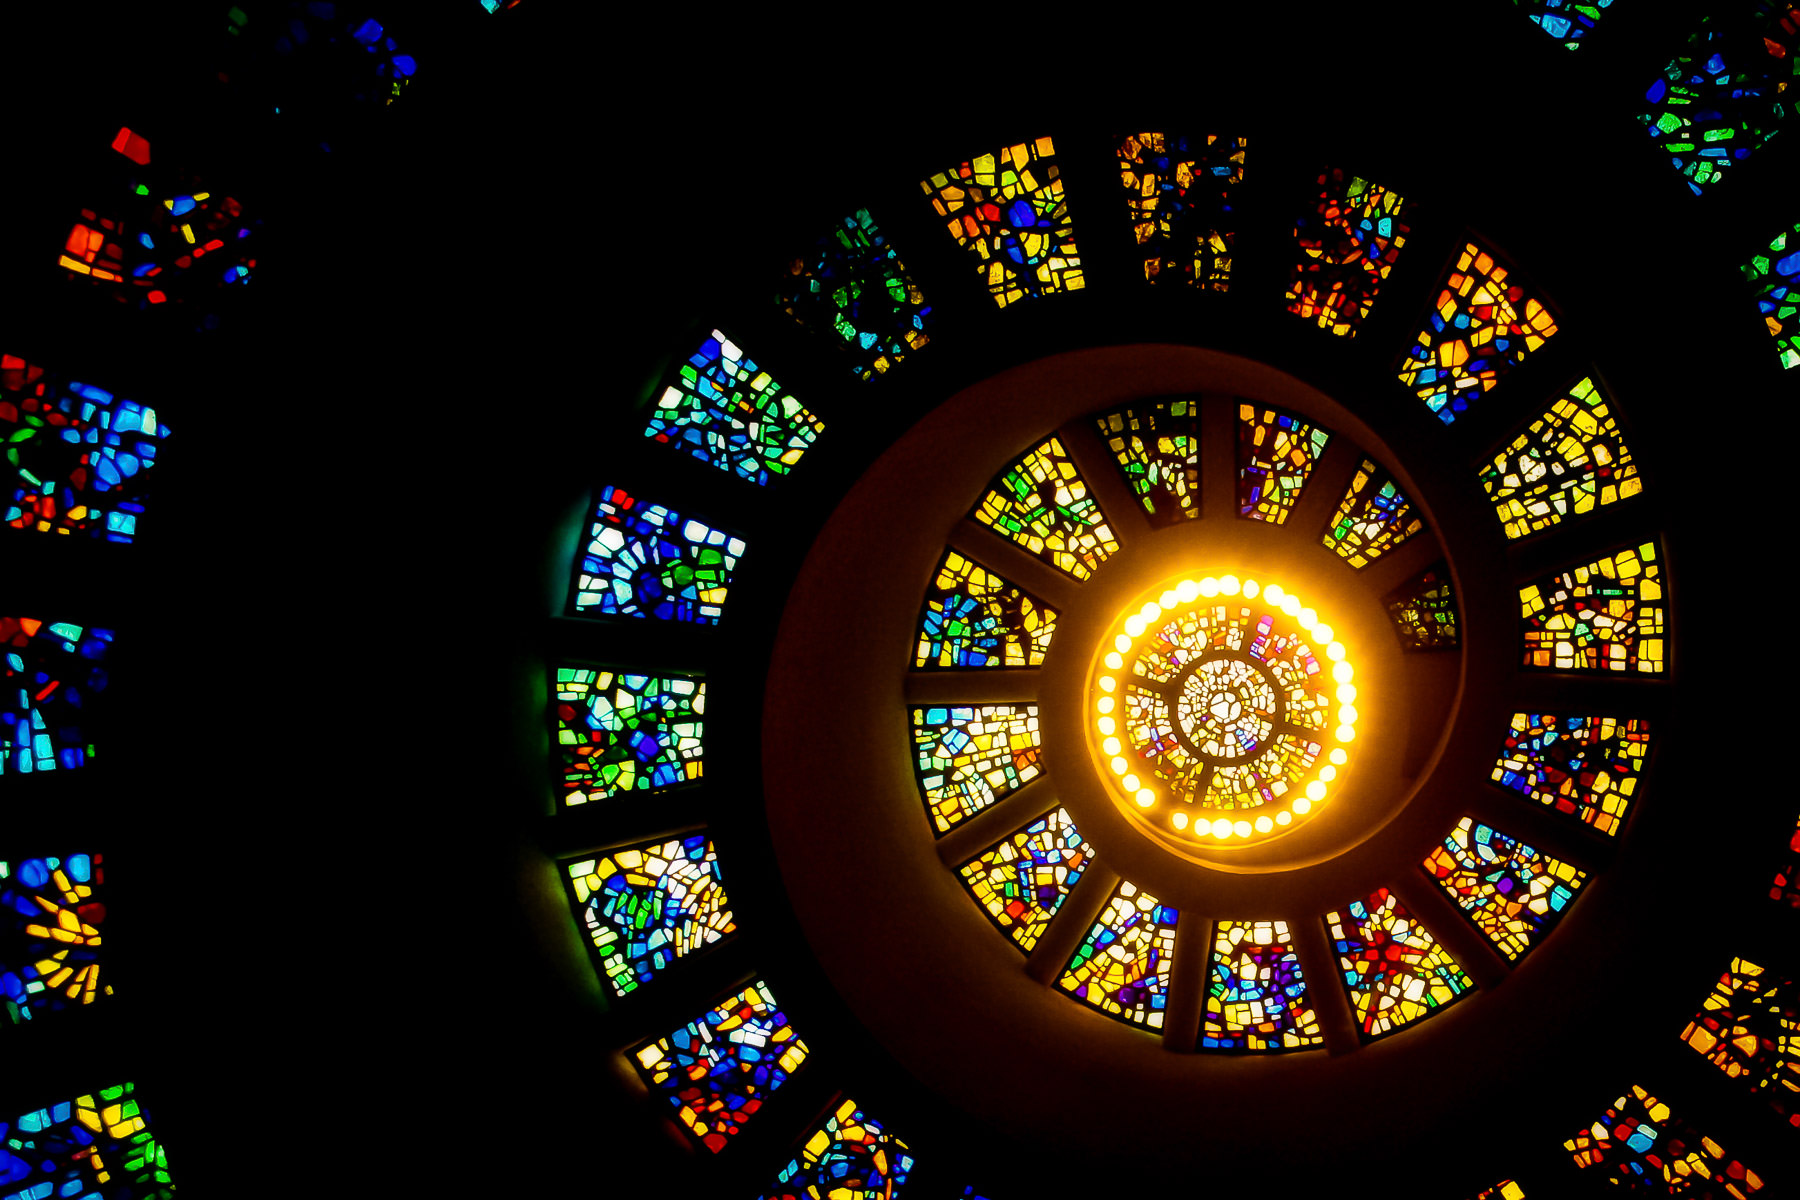 The stained-glass window on the ceiling of the chapel at Thanks-Giving Square in Downtown Dallas.